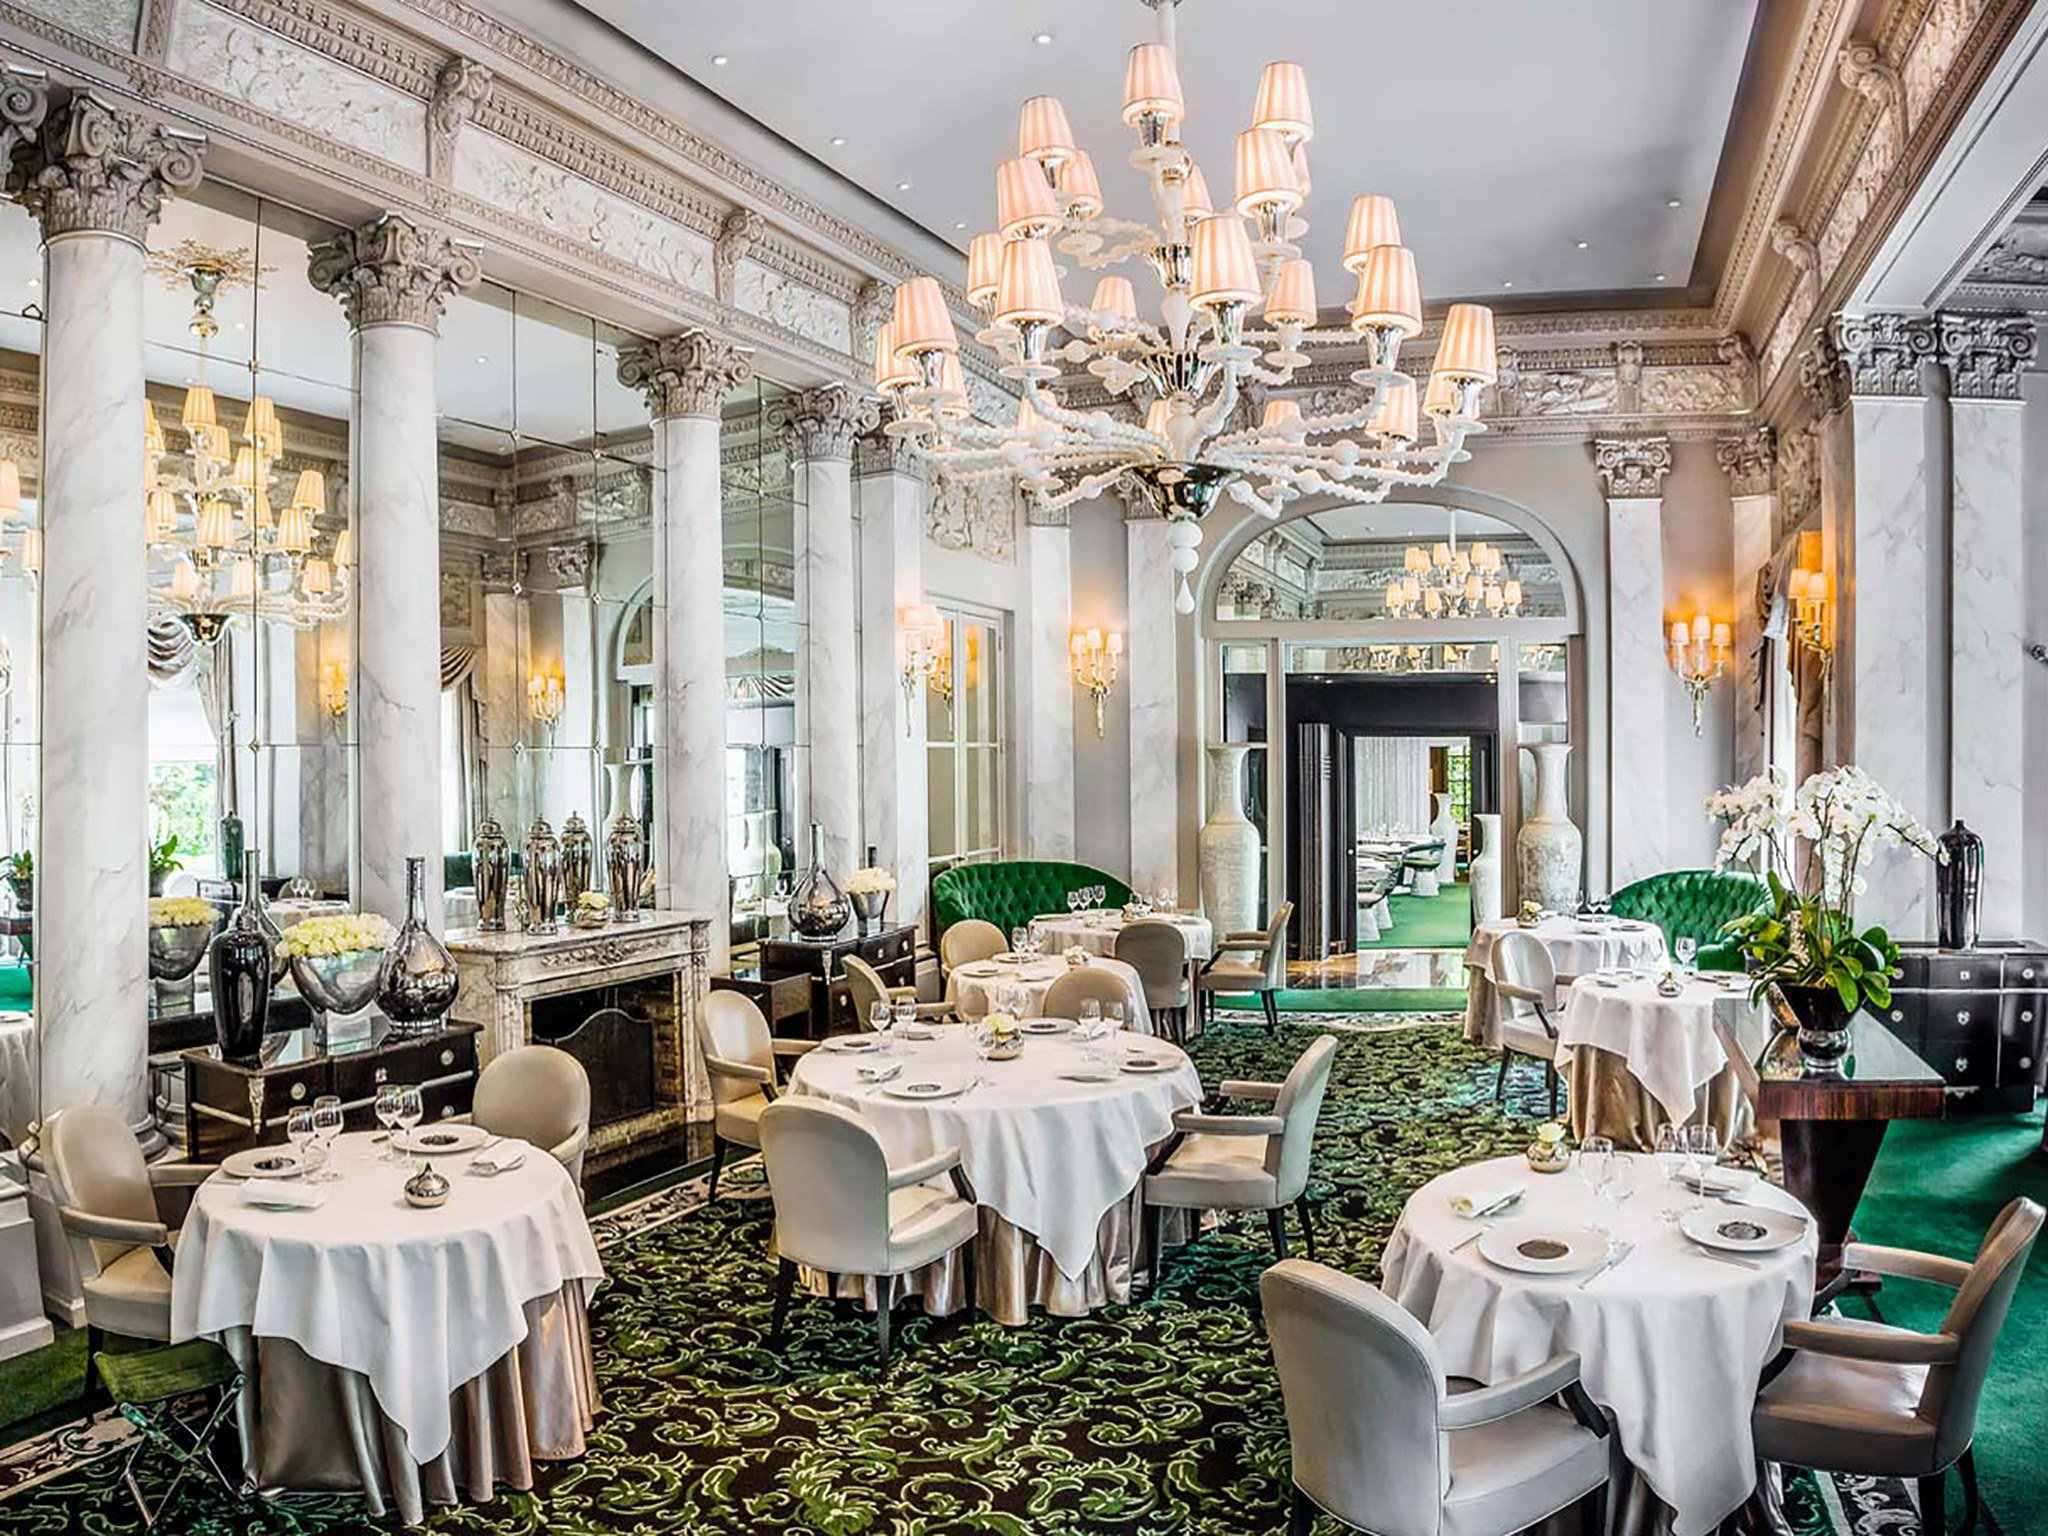 The 13 most expensive restaurants in the world: https://t.co/RcUOdRZlSY https://t.co/jn1Qwwijrs